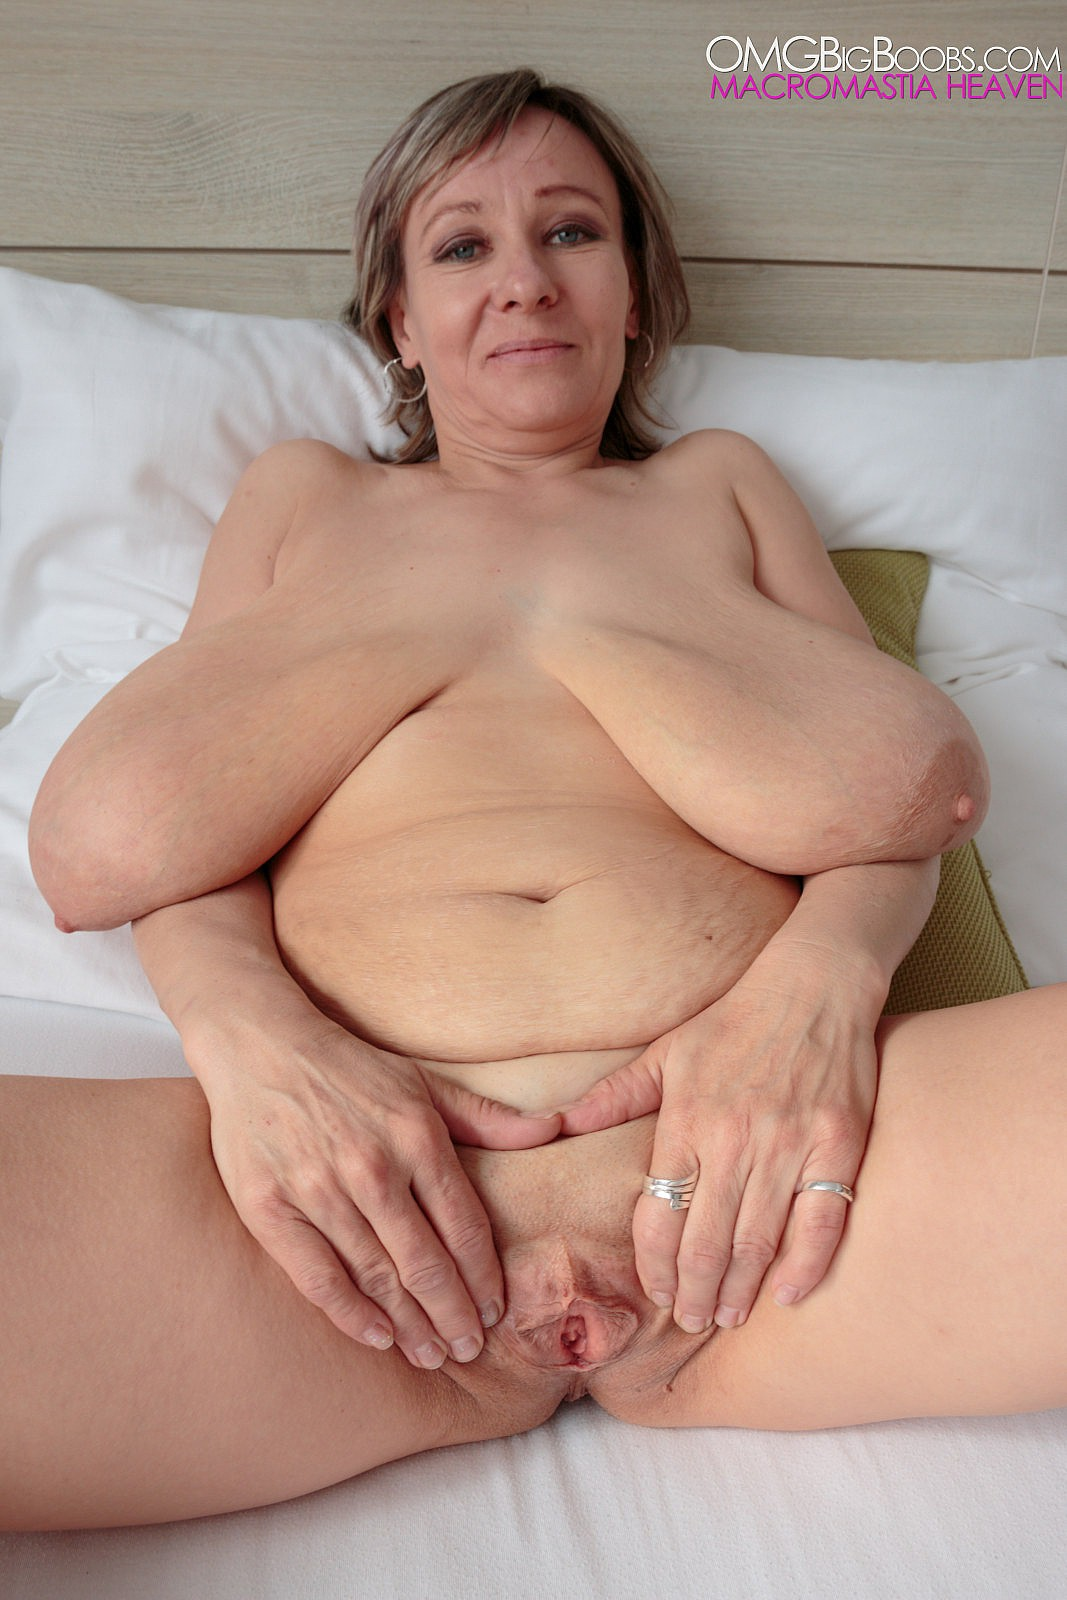 Archive Of Old Women Mature Saggy Tits-2646